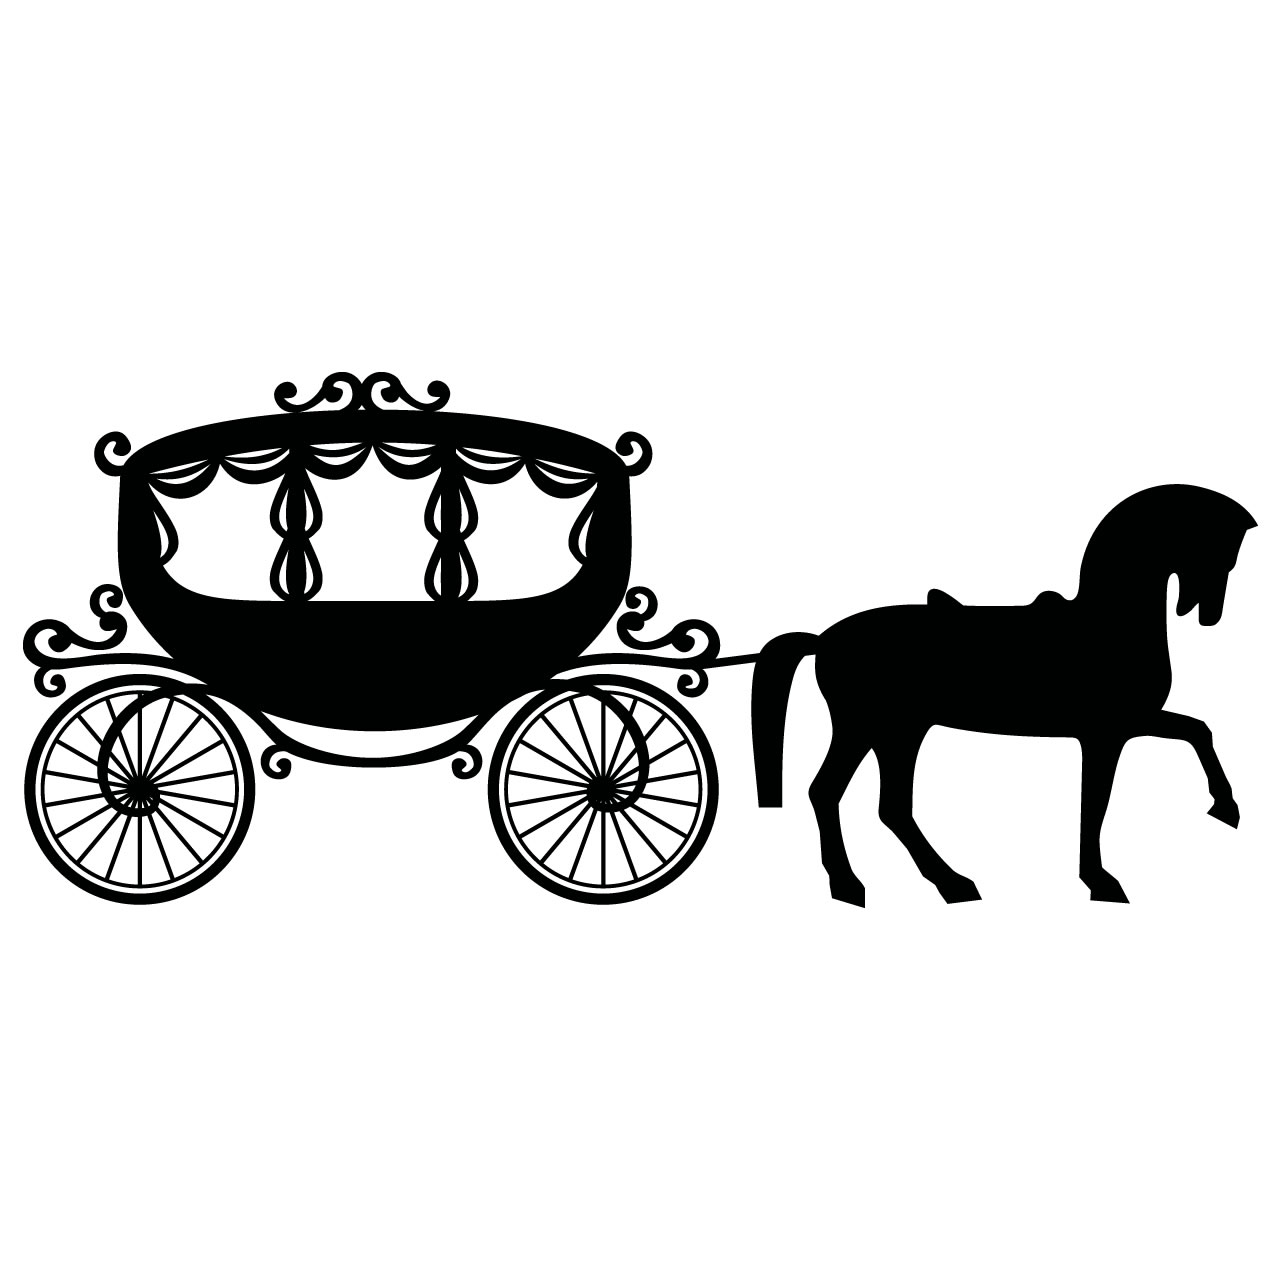 Carriage clipart black and white.  collection of cinderella